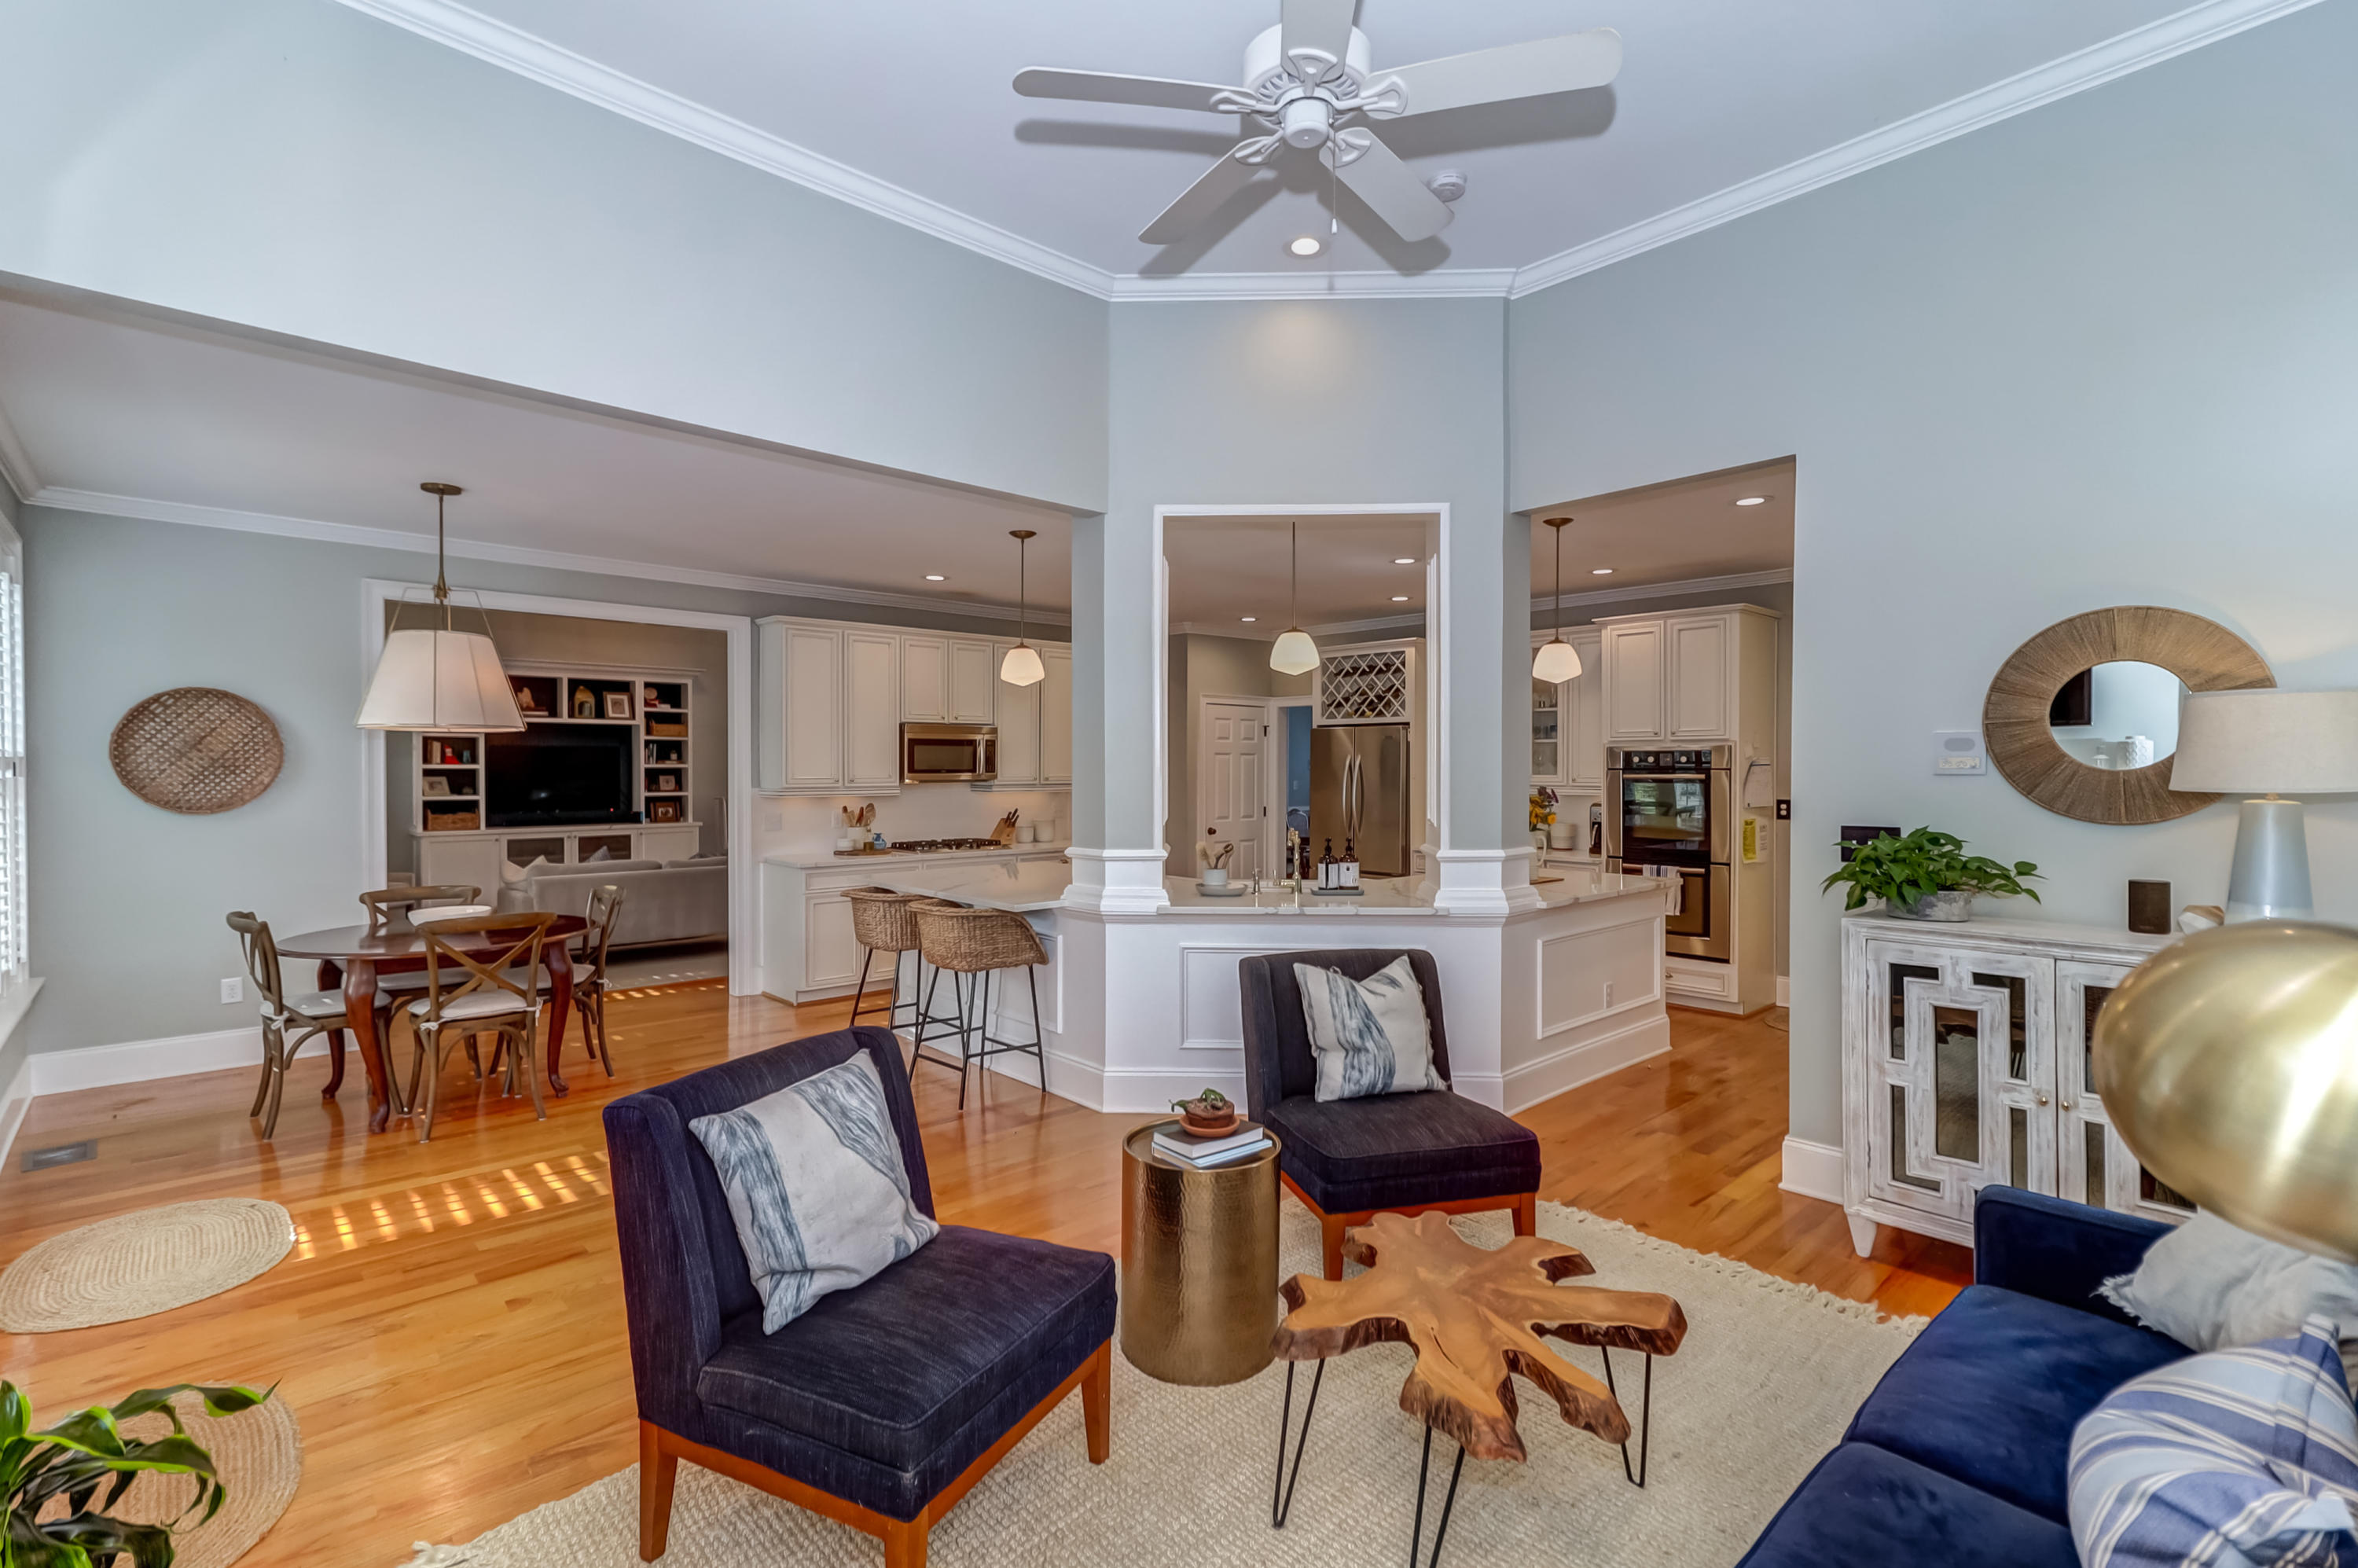 Woodward Pointe Homes For Sale - 657 White Chapel, Charleston, SC - 43